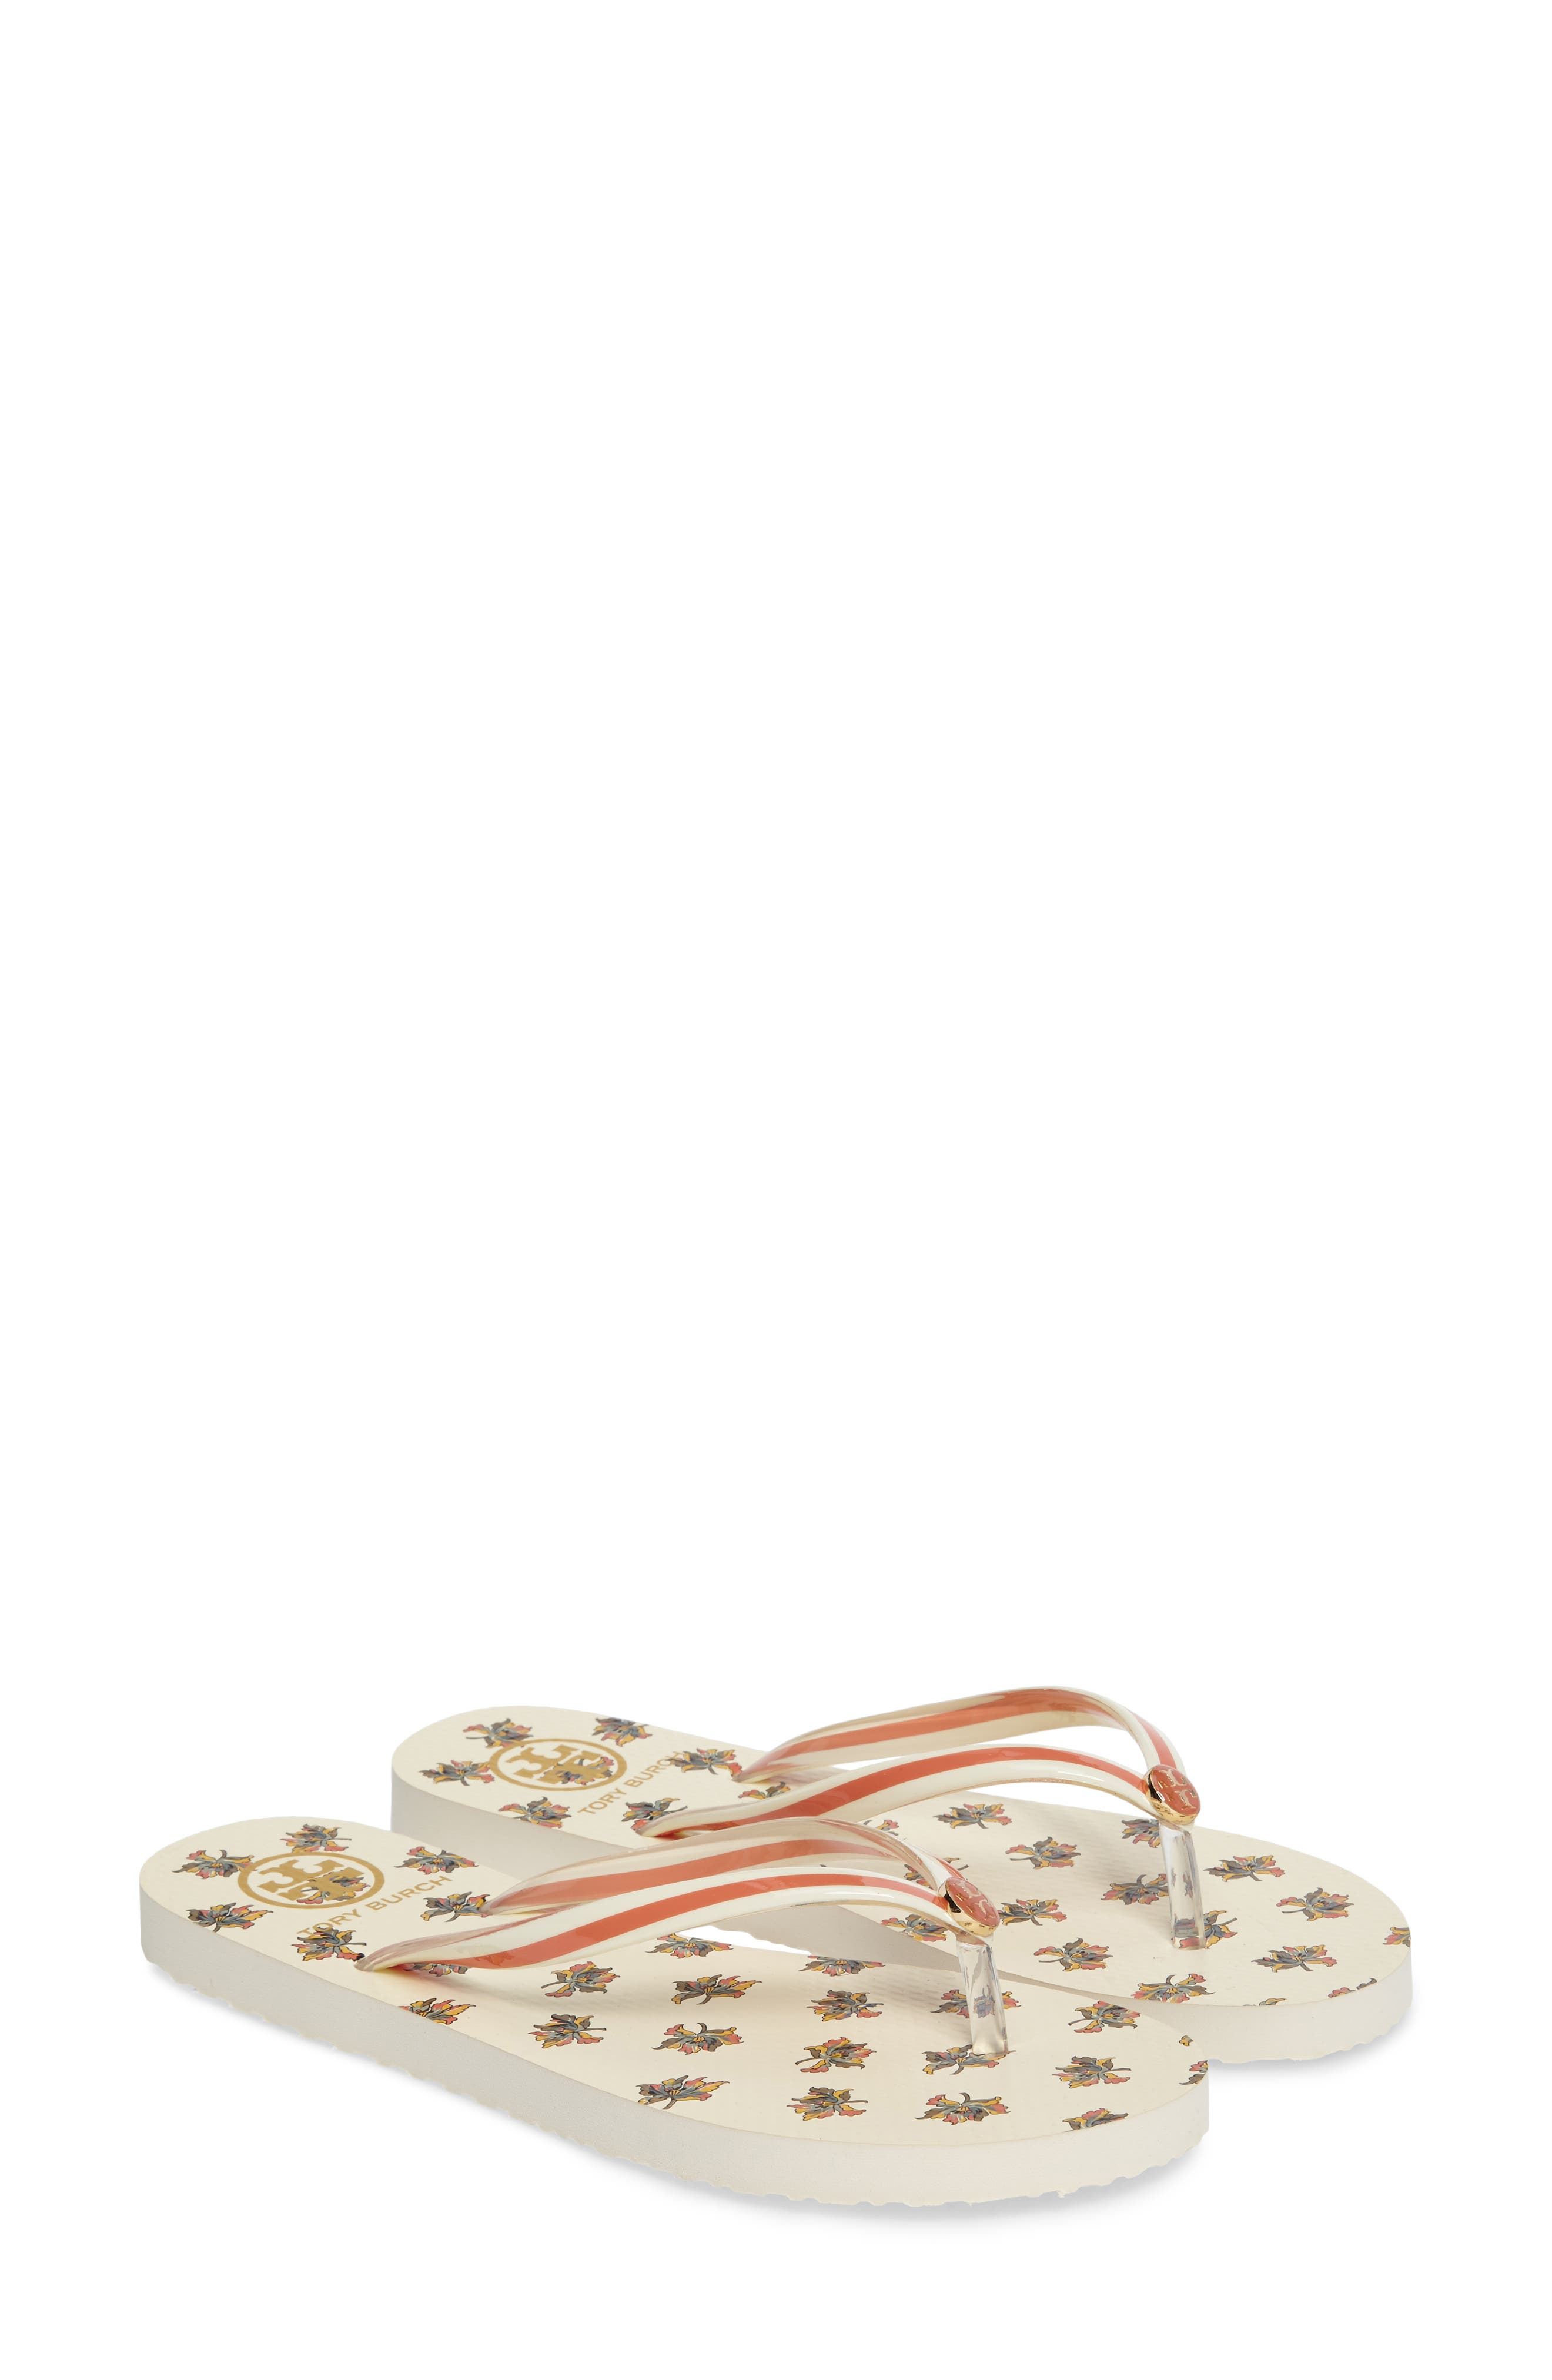 Alternate Image 1 Selected - Tory Burch Thin Flip Flop (Women)